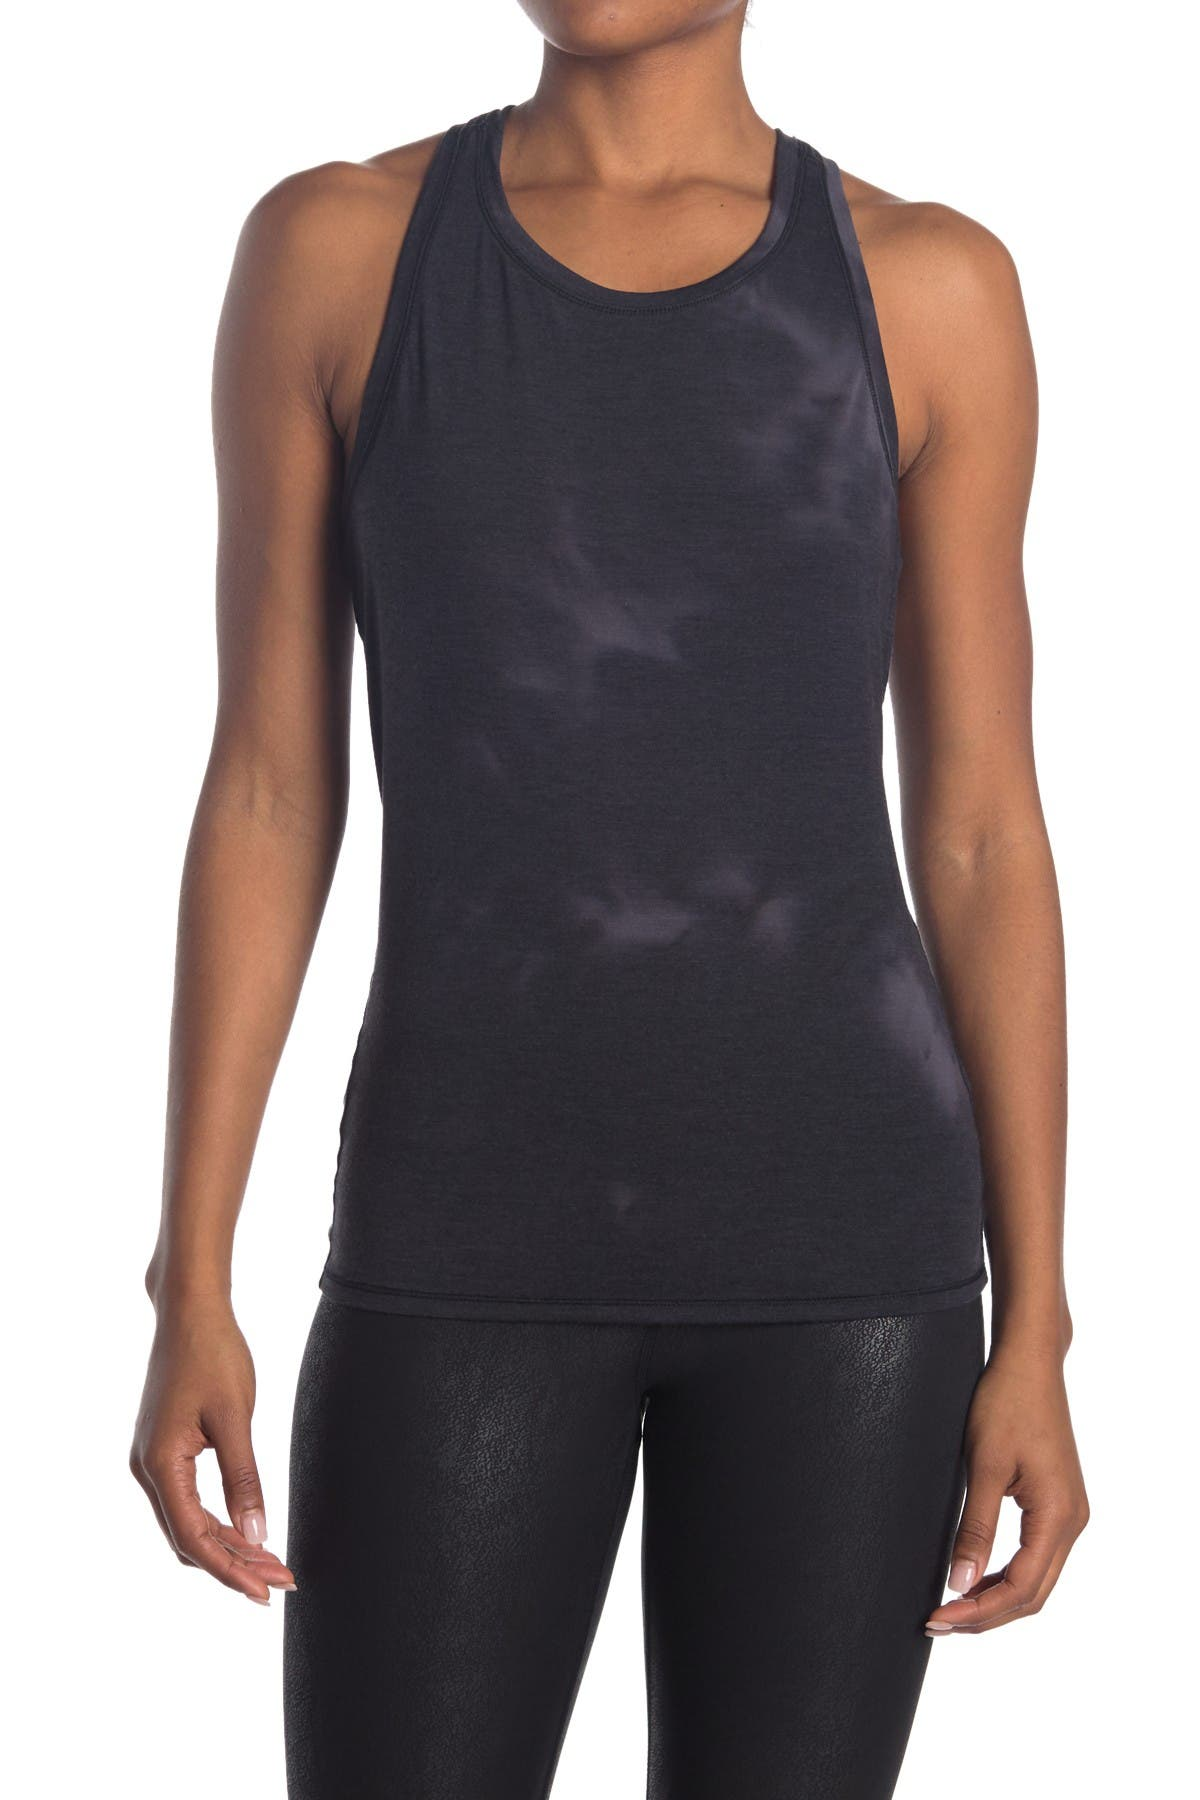 Image of 90 Degree By Reflex Racer Tie Back Tank Top